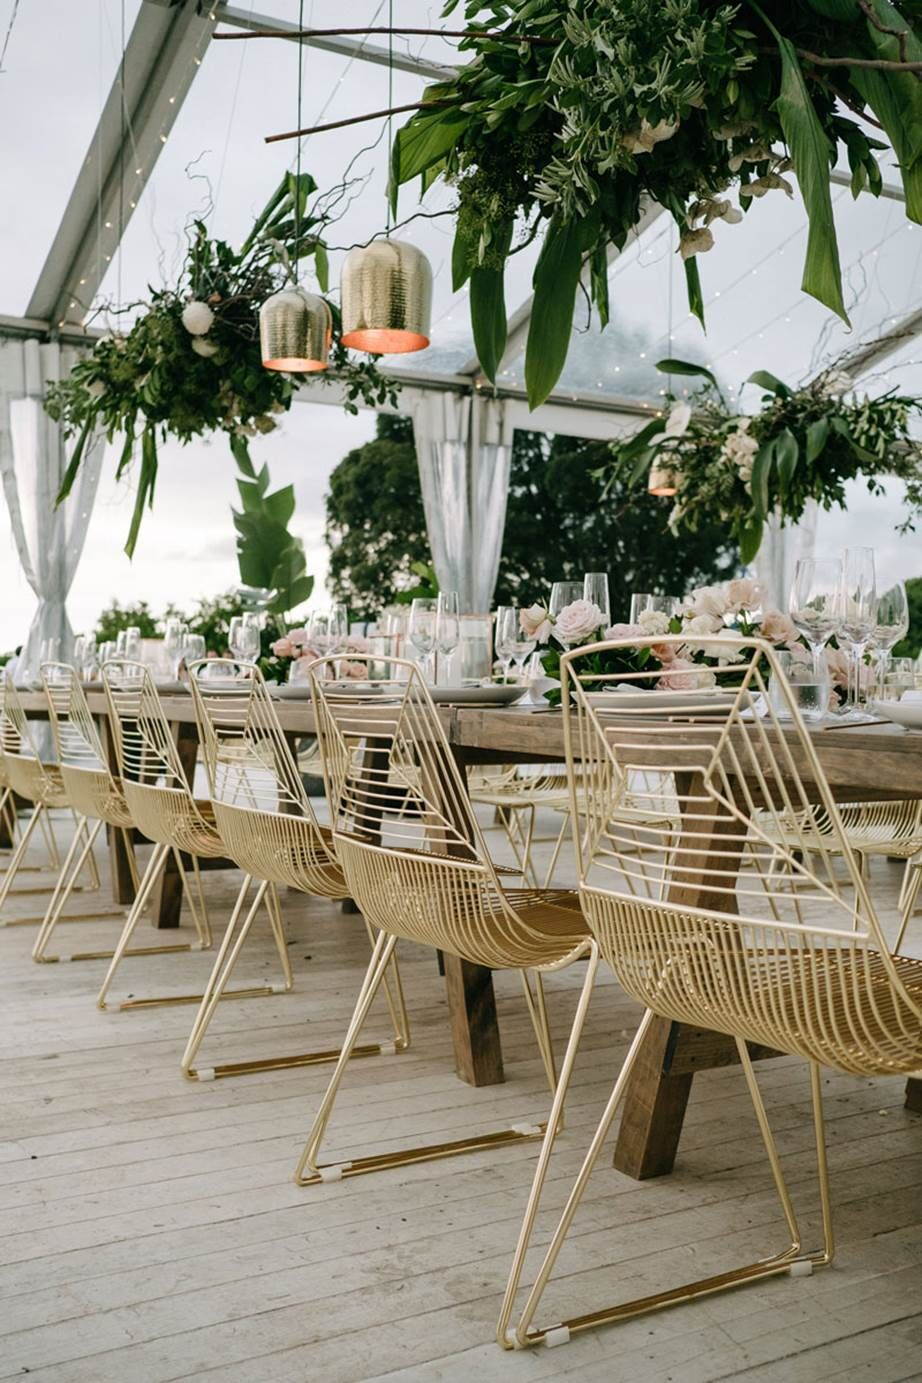 Wedding furniture hire checklist everything you need to hire for a diy reception read more at hampton event hire www hamptoneventhire com image via